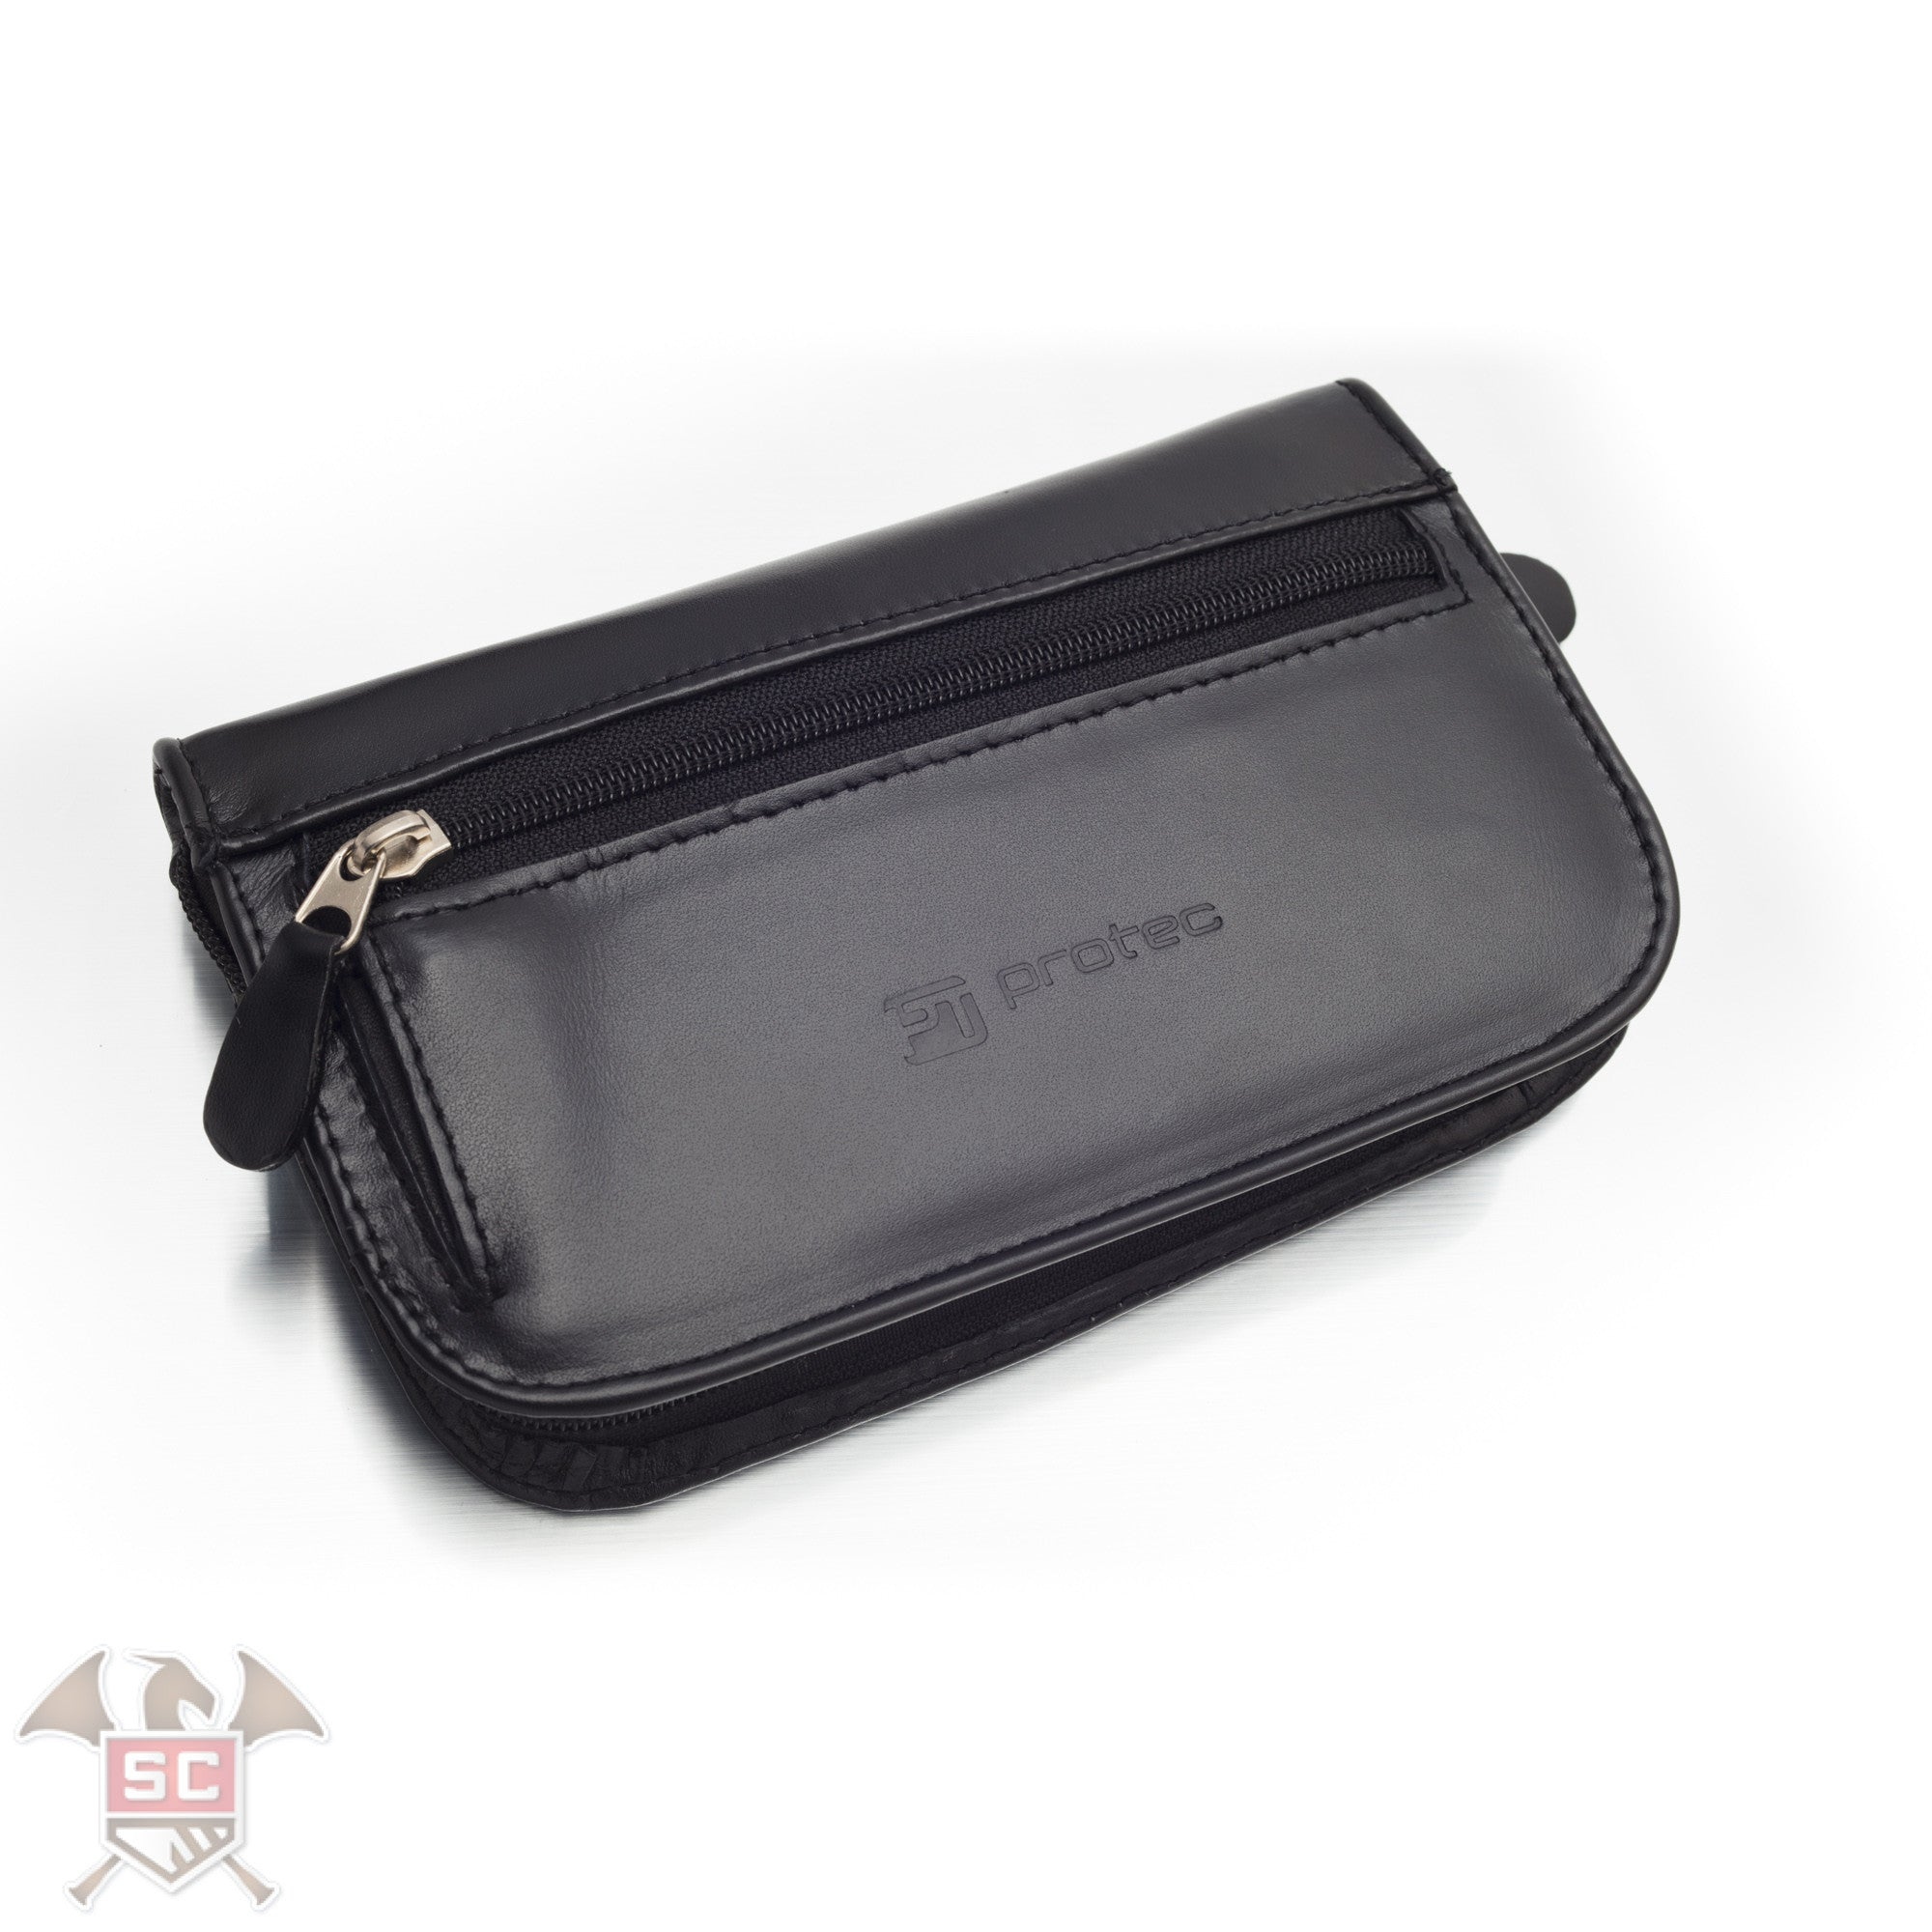 ProTec Multi Mouthpiece Leather Pouch L221